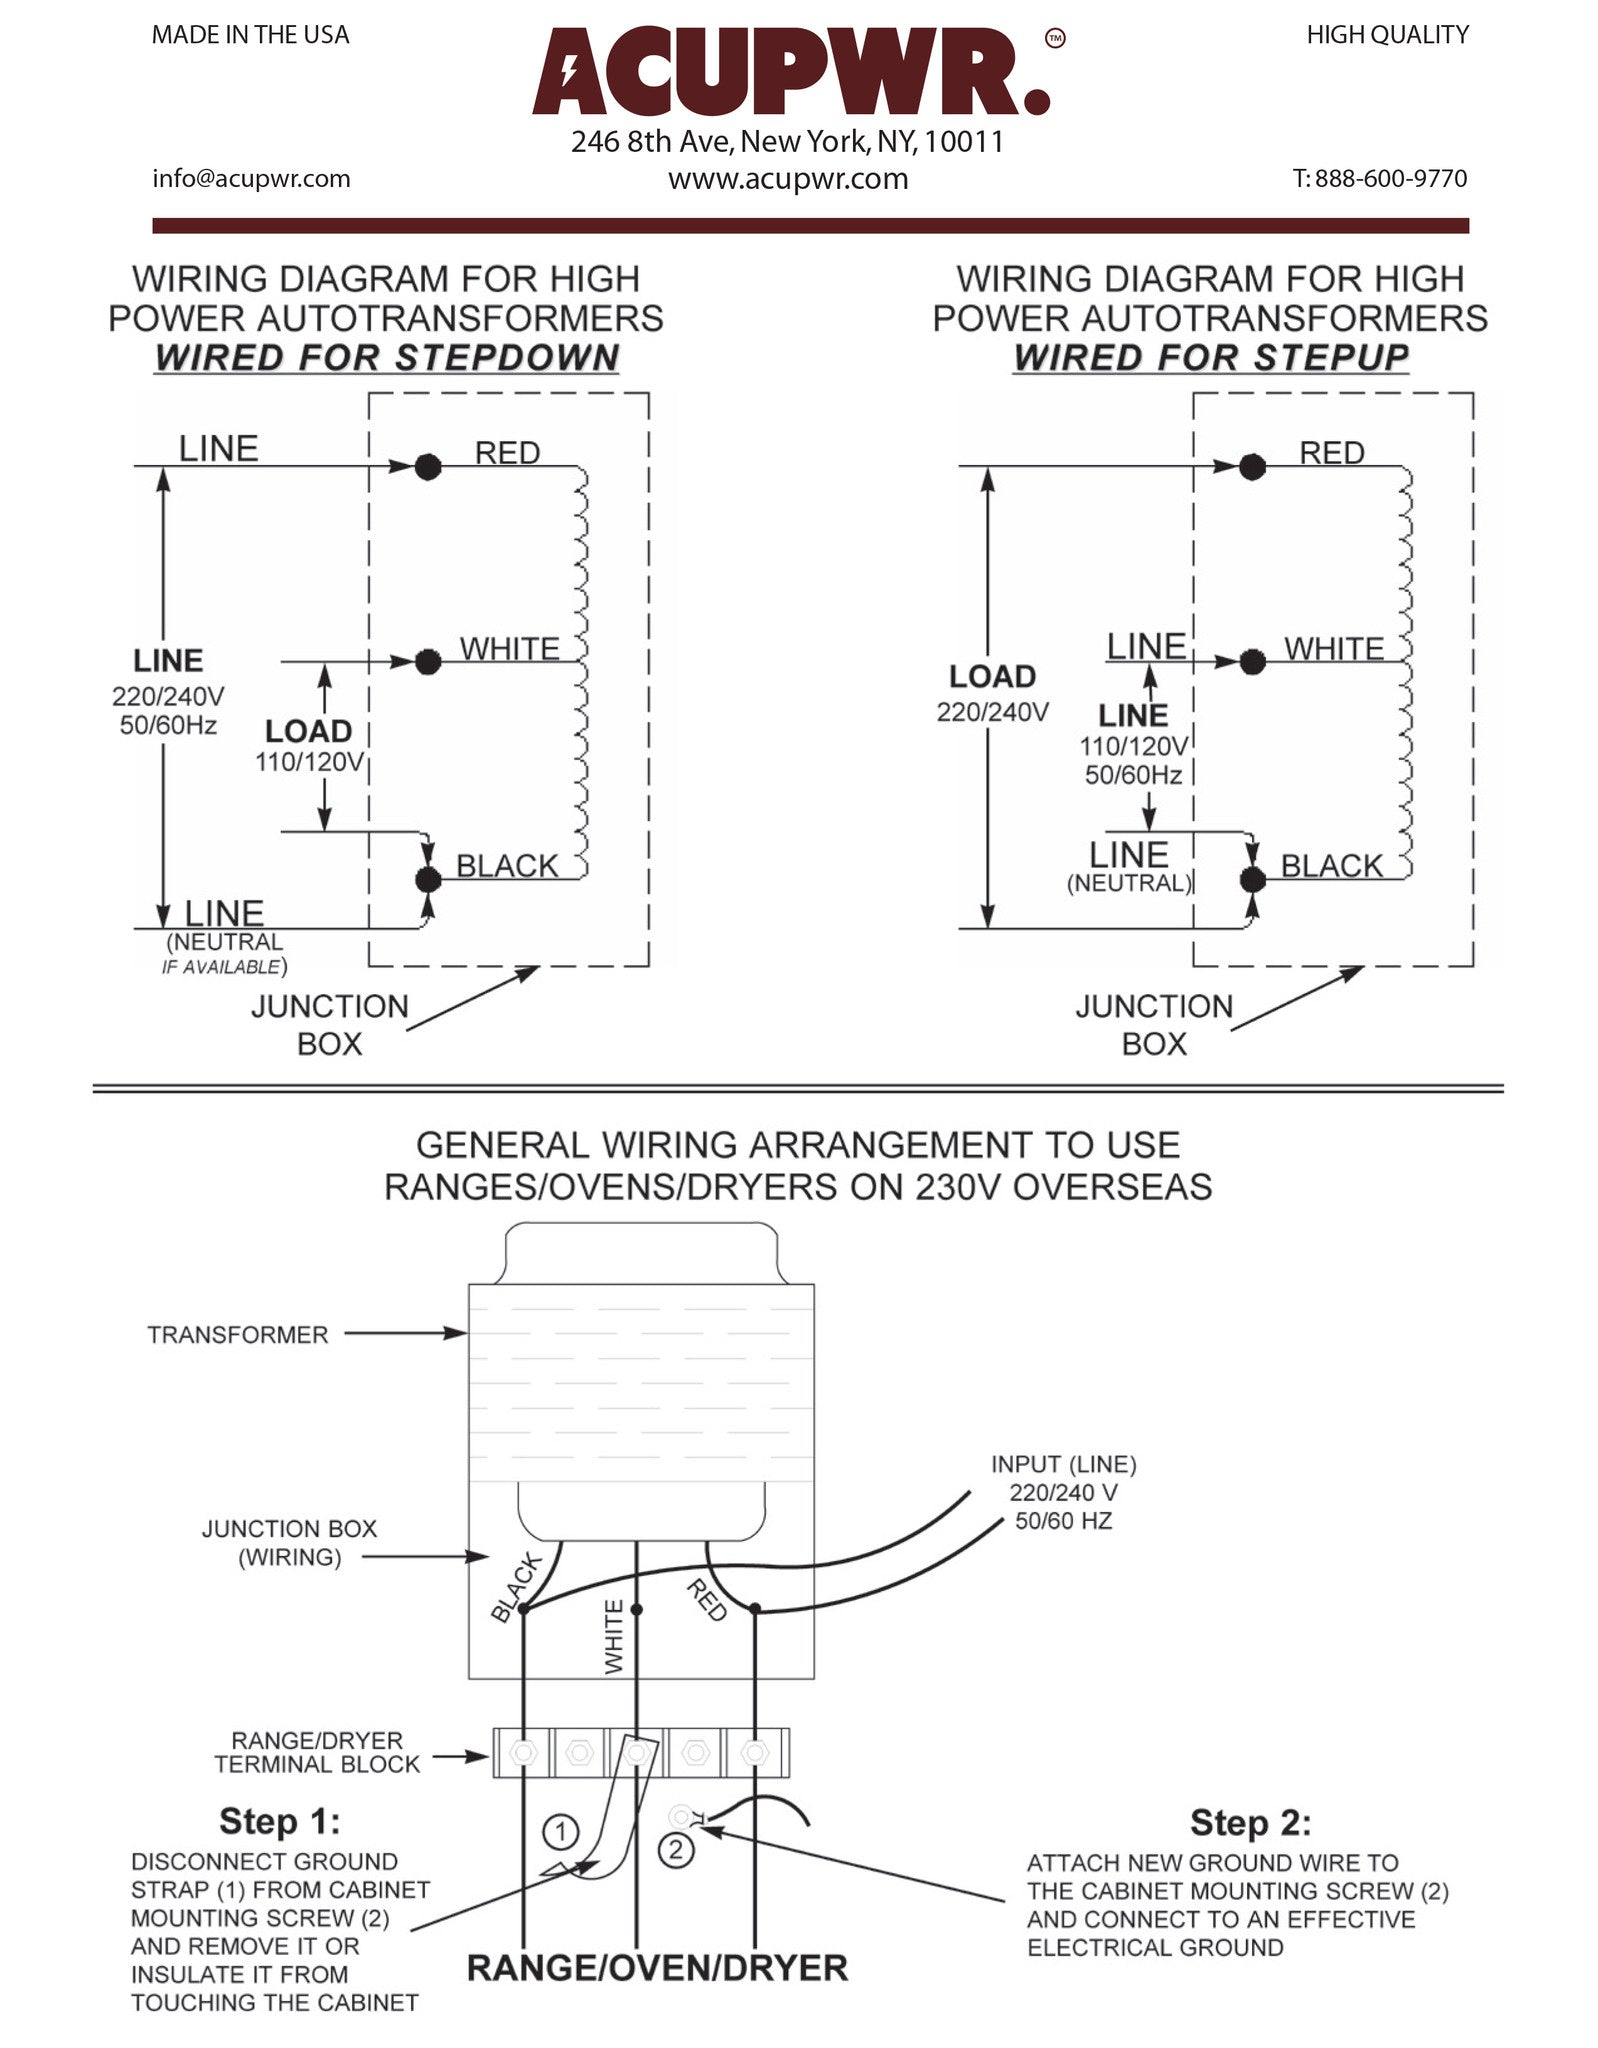 Aduh_Diagram_38ee0227 0107 4a34 96d3 1a7cb27ac531?v=1478031456 6000 tru watts™ step up step down hard wire voltage with knock  at soozxer.org